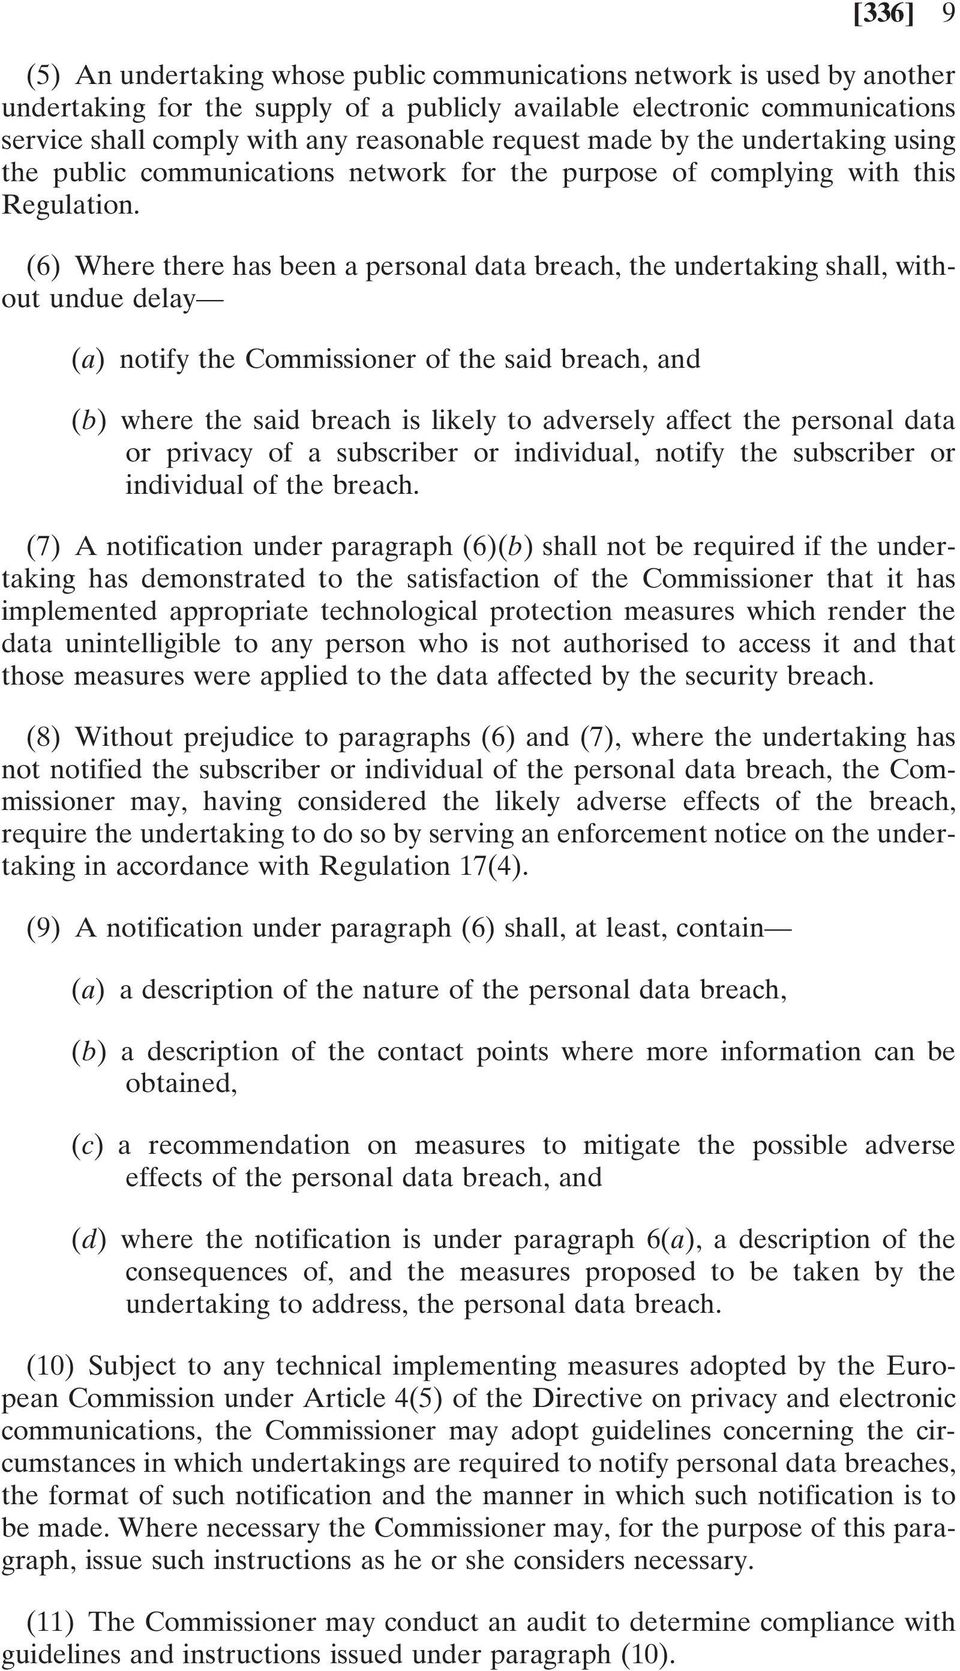 (6) Where there has been a personal data breach, the undertaking shall, without undue delay (a) notify the Commissioner of the said breach, and (b) where the said breach is likely to adversely affect